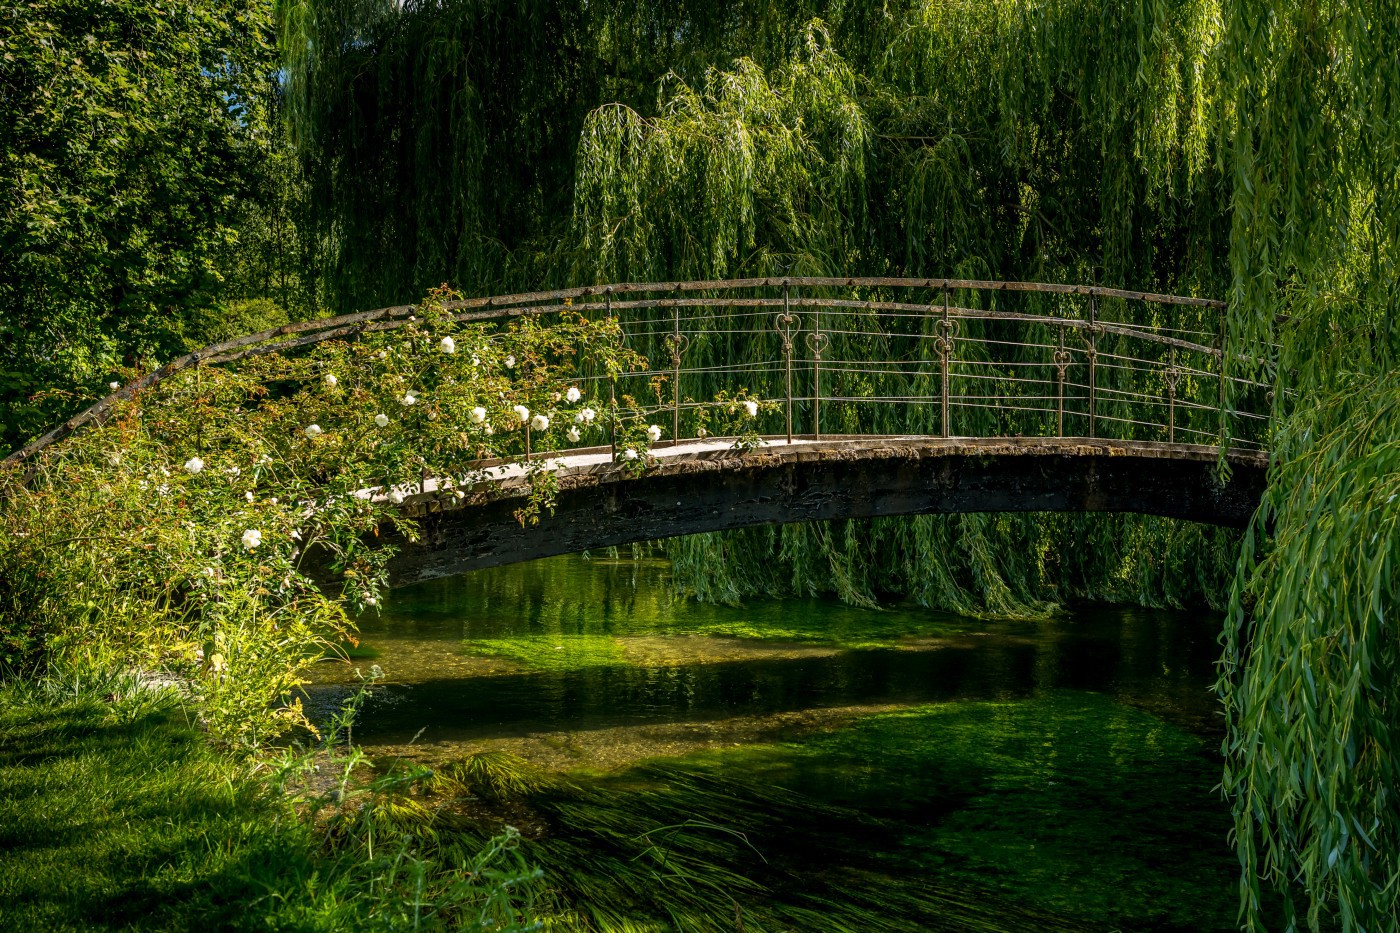 A bridge arcs over a slow-moving river. Vegetations crowds the banks and vines with white flowers grow over the bridge.